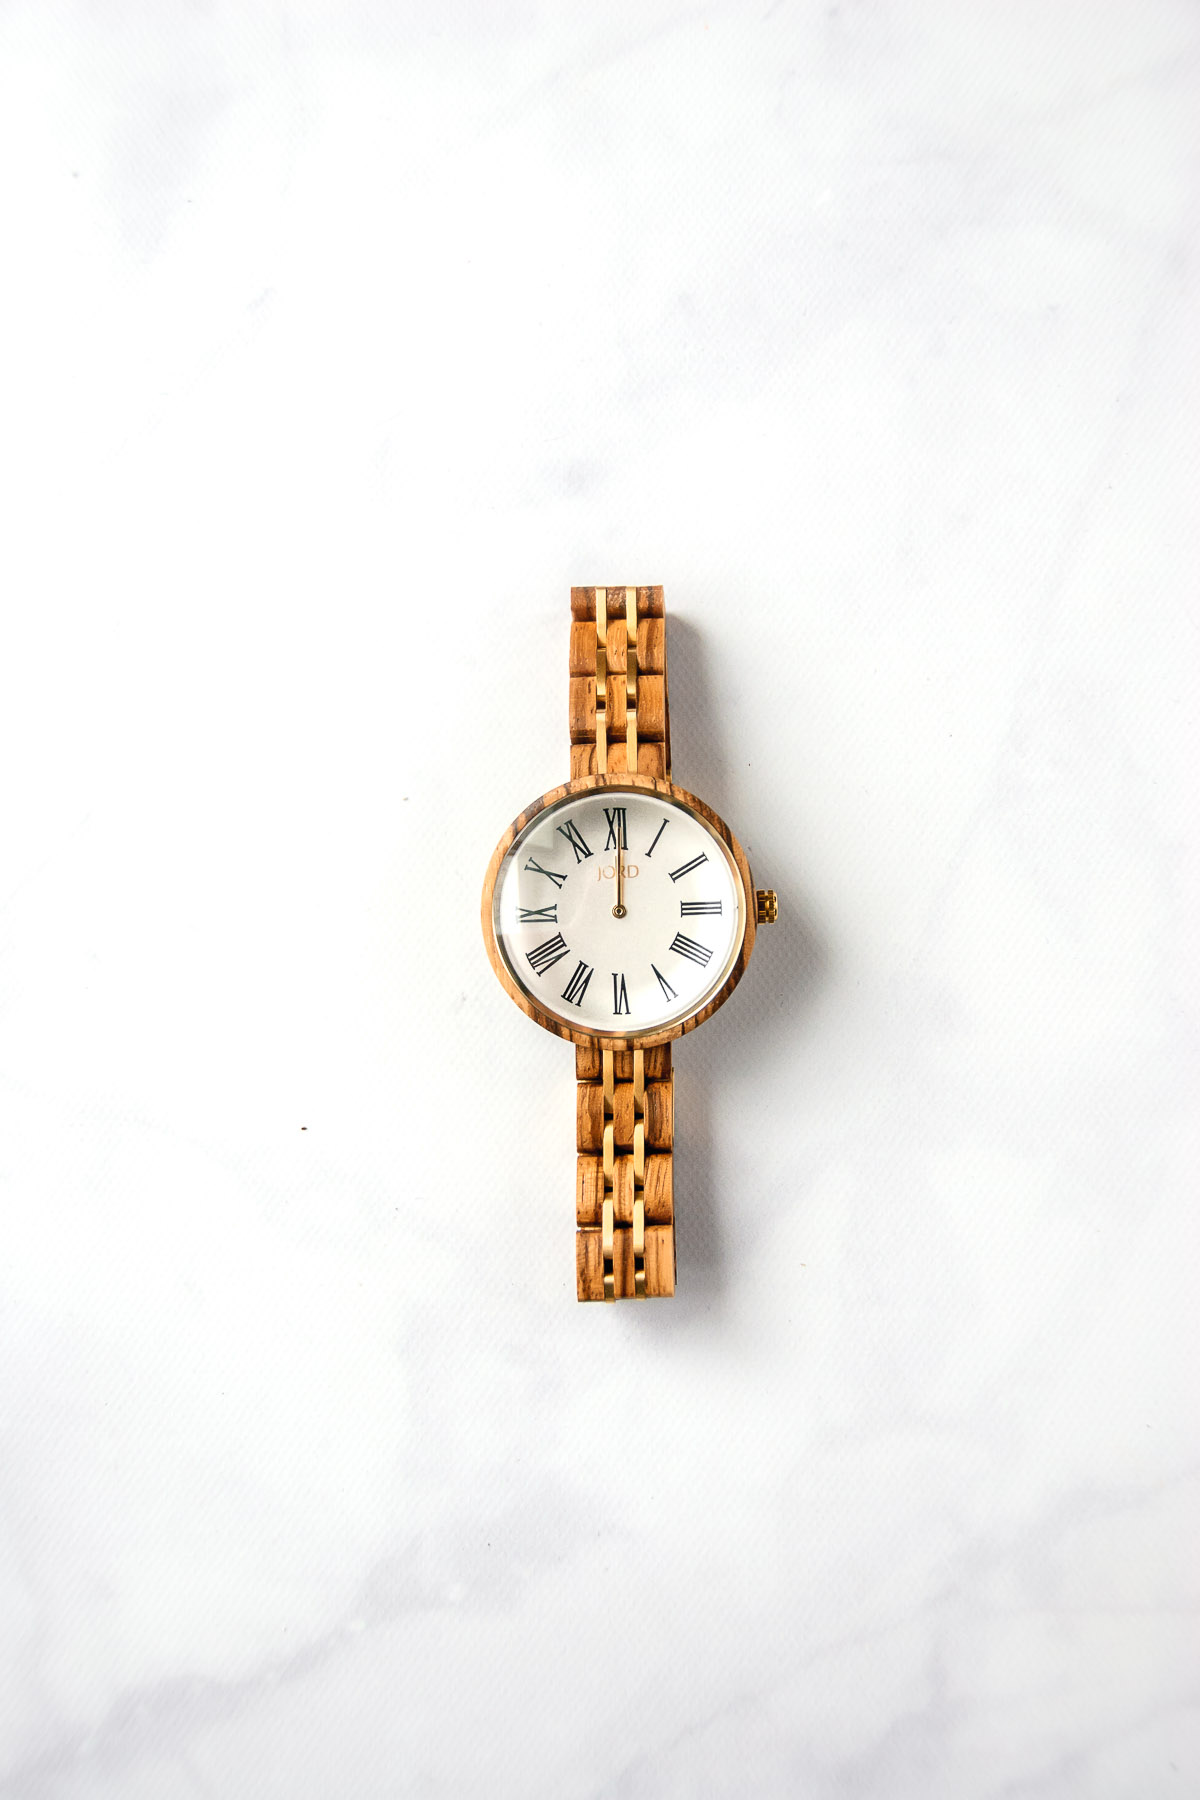 Close up of the Cassia Zebra & Ivory wood watch by JORD on a marble countertop.